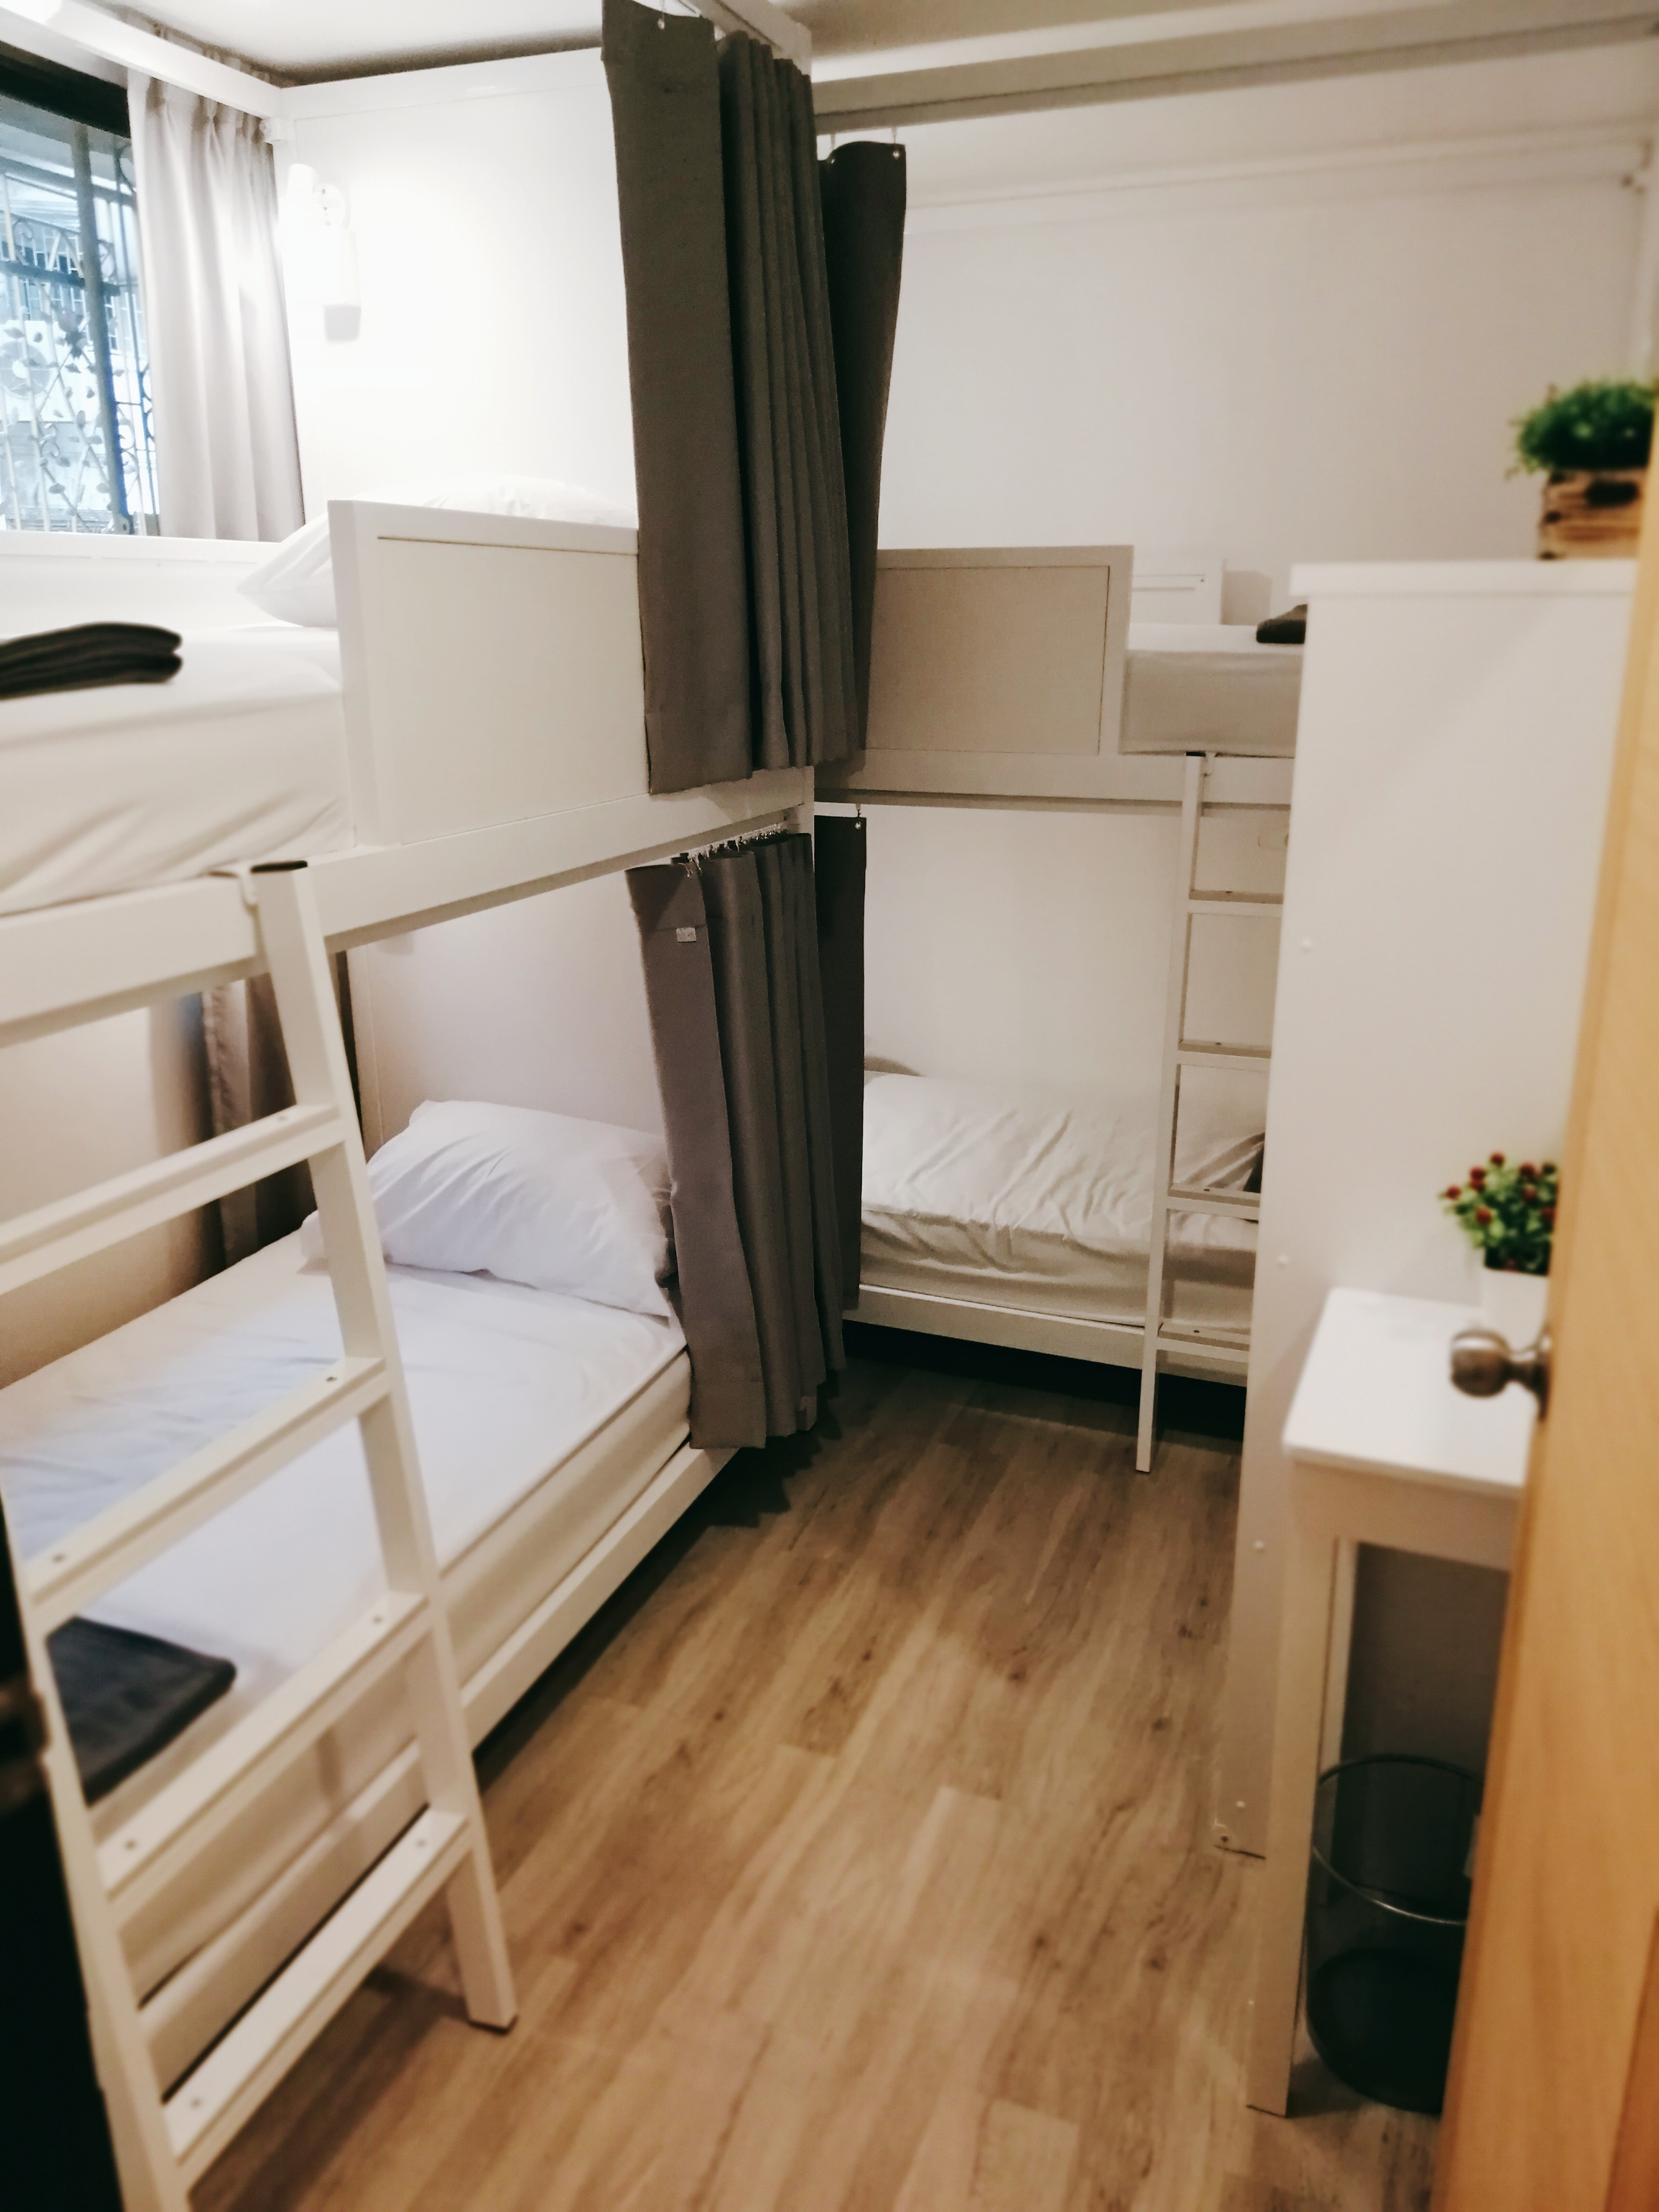 Picture of: White House Hostel 2 Bunk Beds Shared Bathroom Hostels For Rent In Khet Ratchathewi Krung Thep Maha Nakhon Thailand